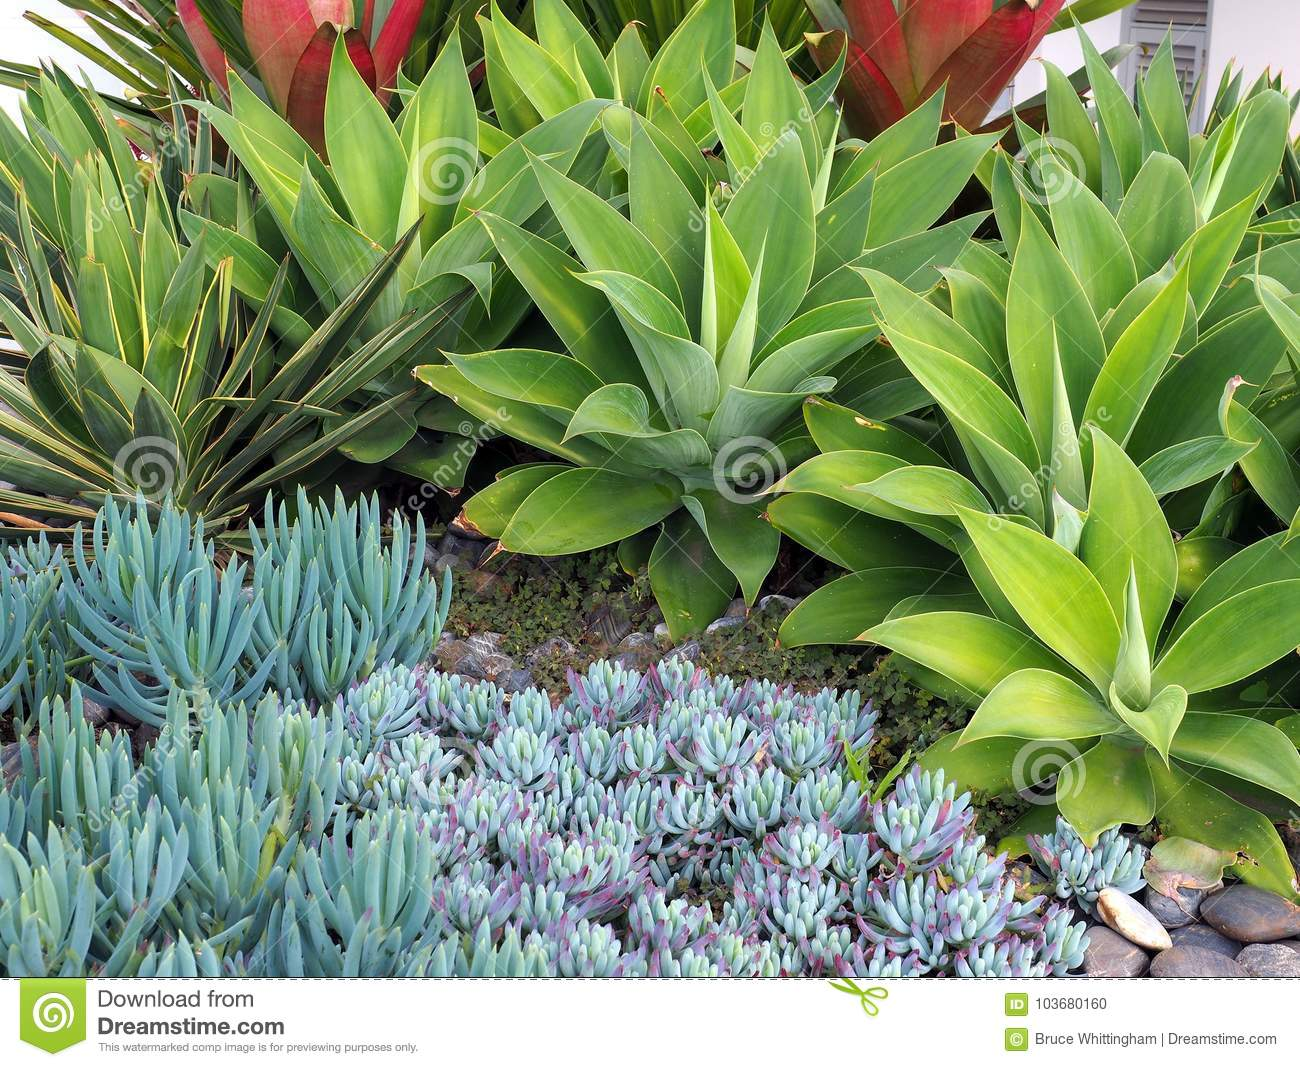 Small Succulent Cactus Plants In Rock Garden Stock Photo Image Of Decorative Groomed 103680160